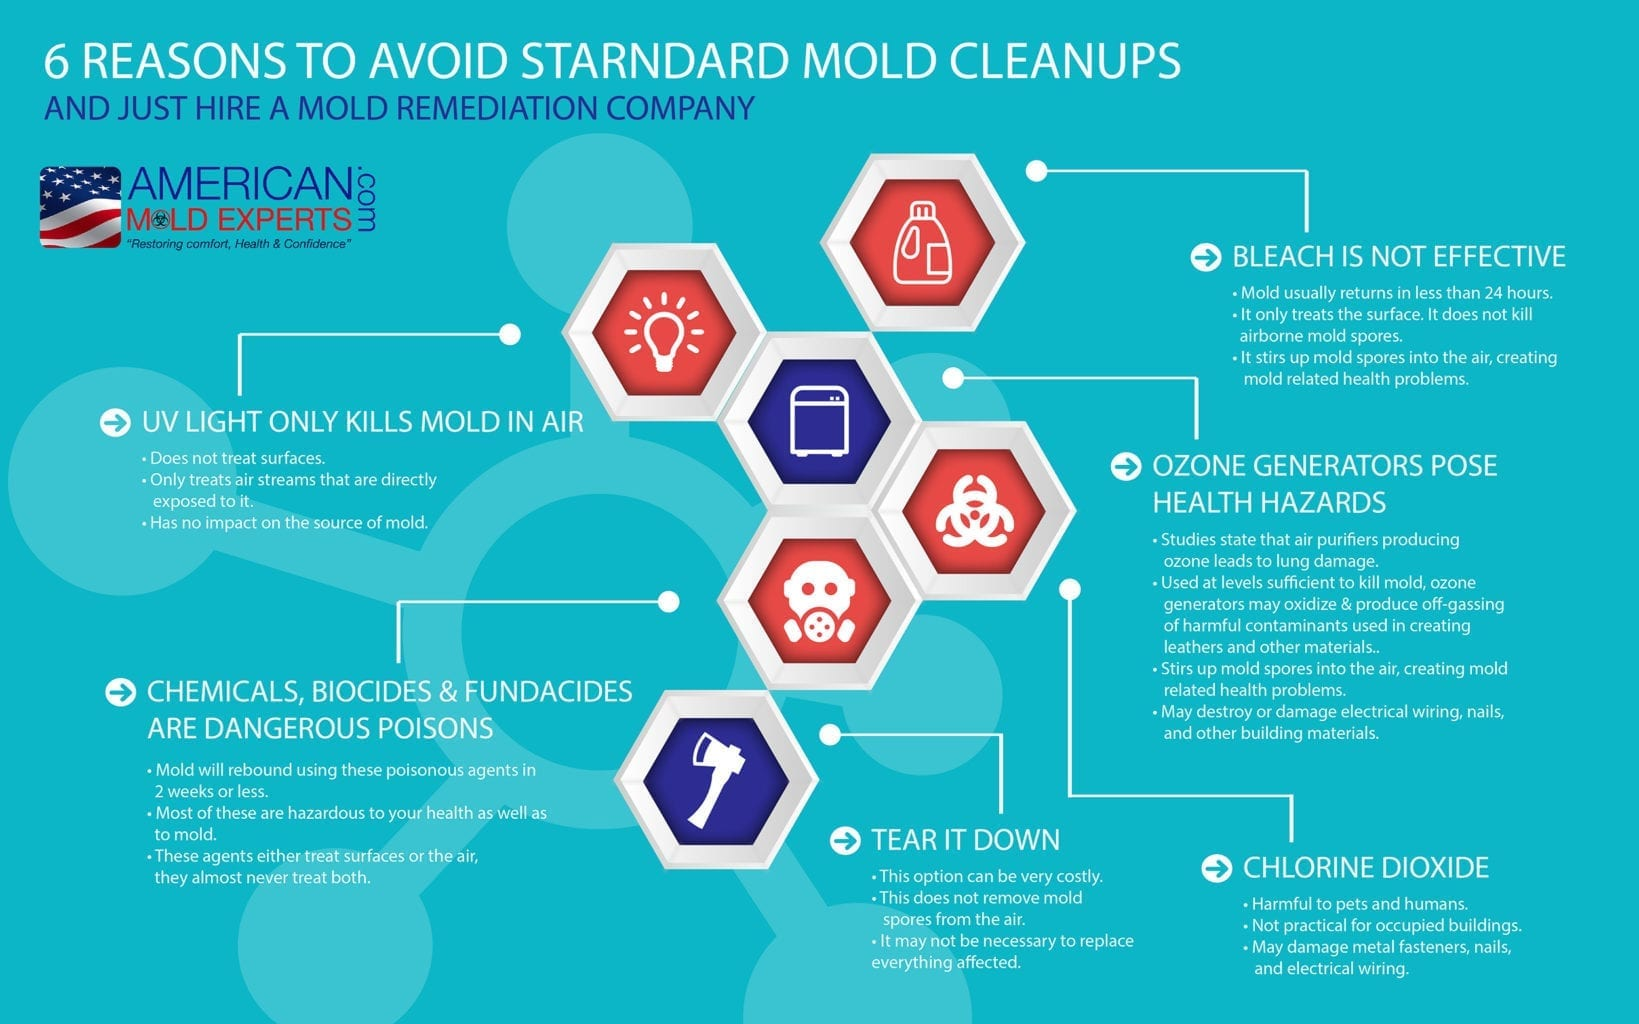 MOLD-REMEDIATION-INFOGRAPHIC - American Mold Experts